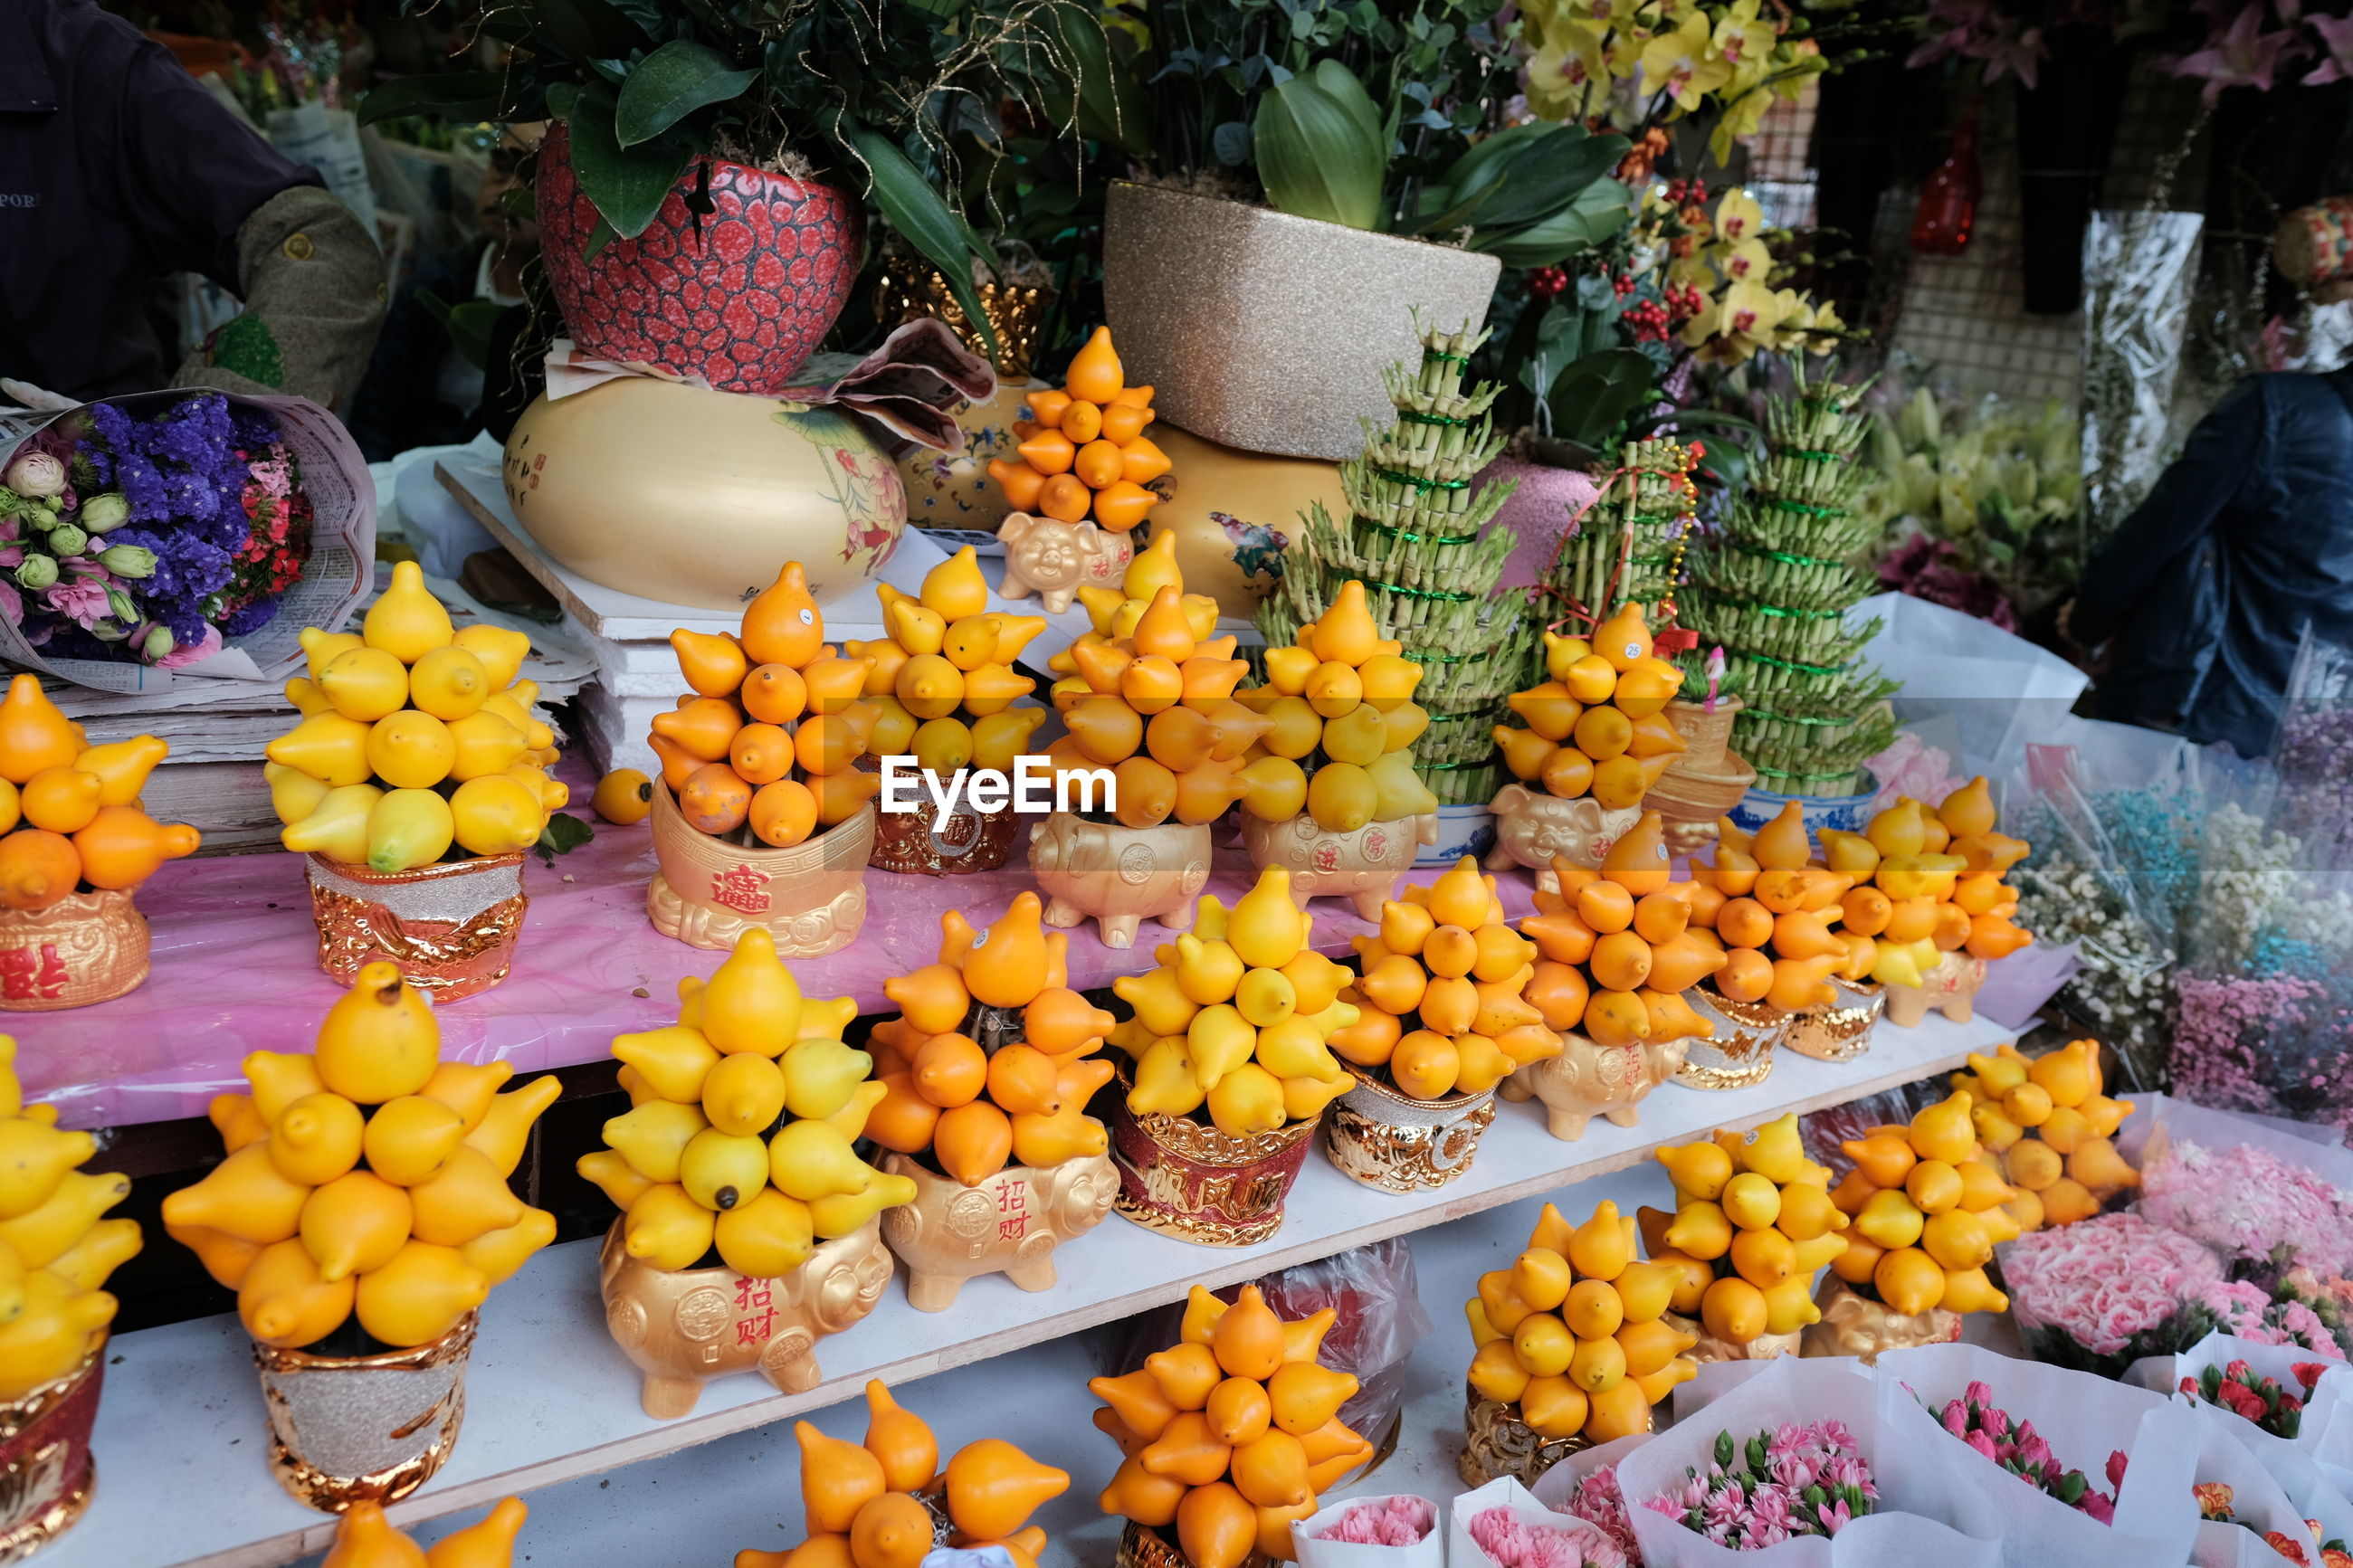 VARIOUS FRUITS FOR SALE IN MARKET STALL